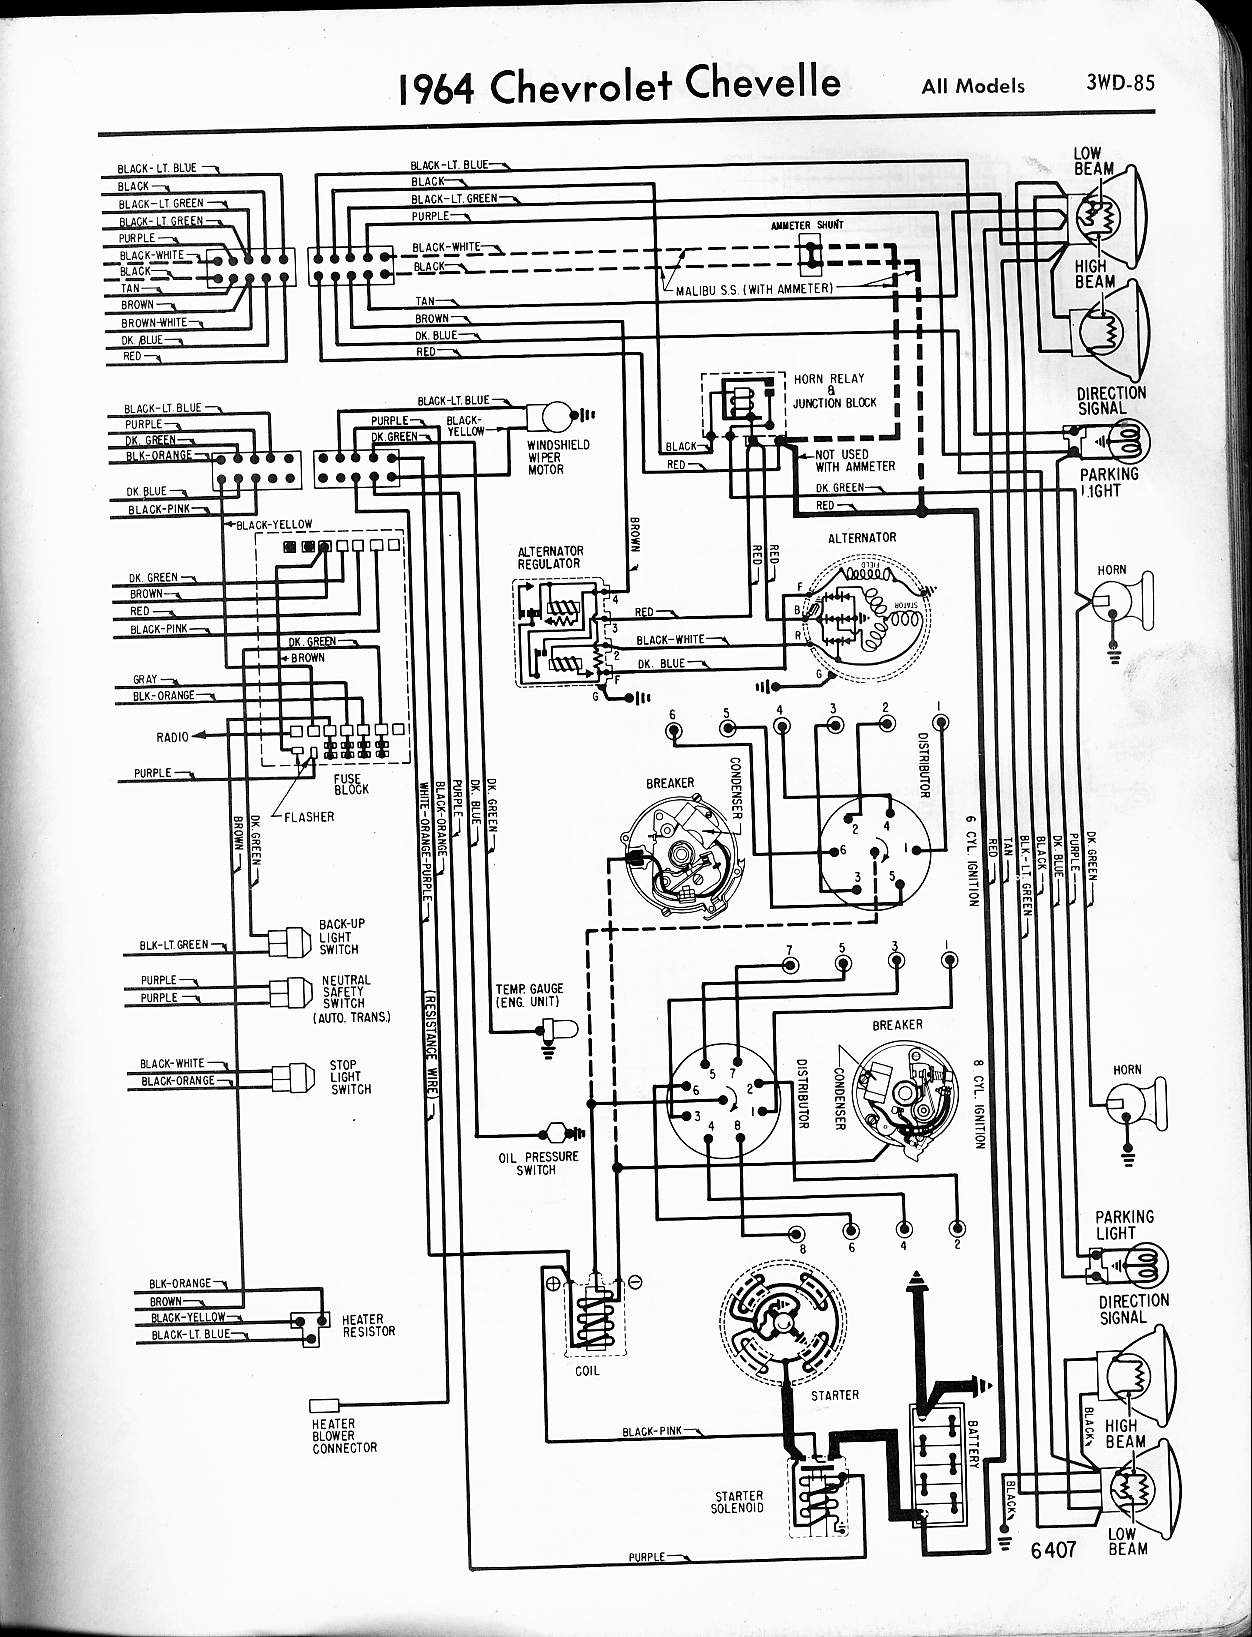 1965 Chevy Nova Steering Column Diagram Diy Enthusiasts Wiring 1964 Ford Falcon Chevelle For Circuit U2022 Rh Ericruizgarcia Co 67 Parts